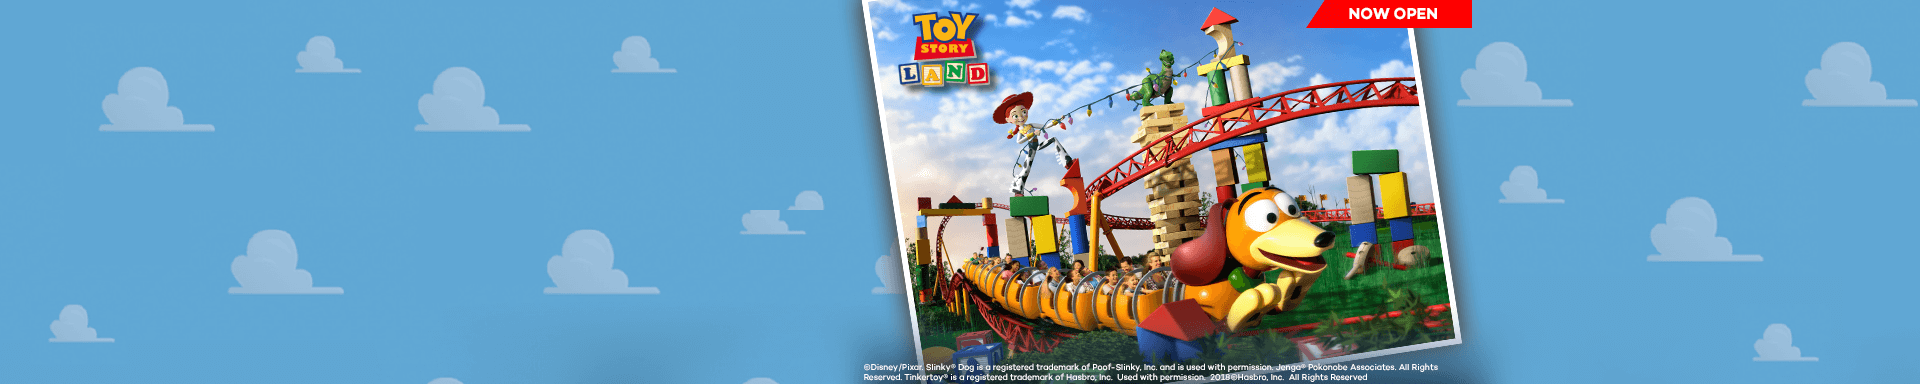 Toy Story Land - Now Open!